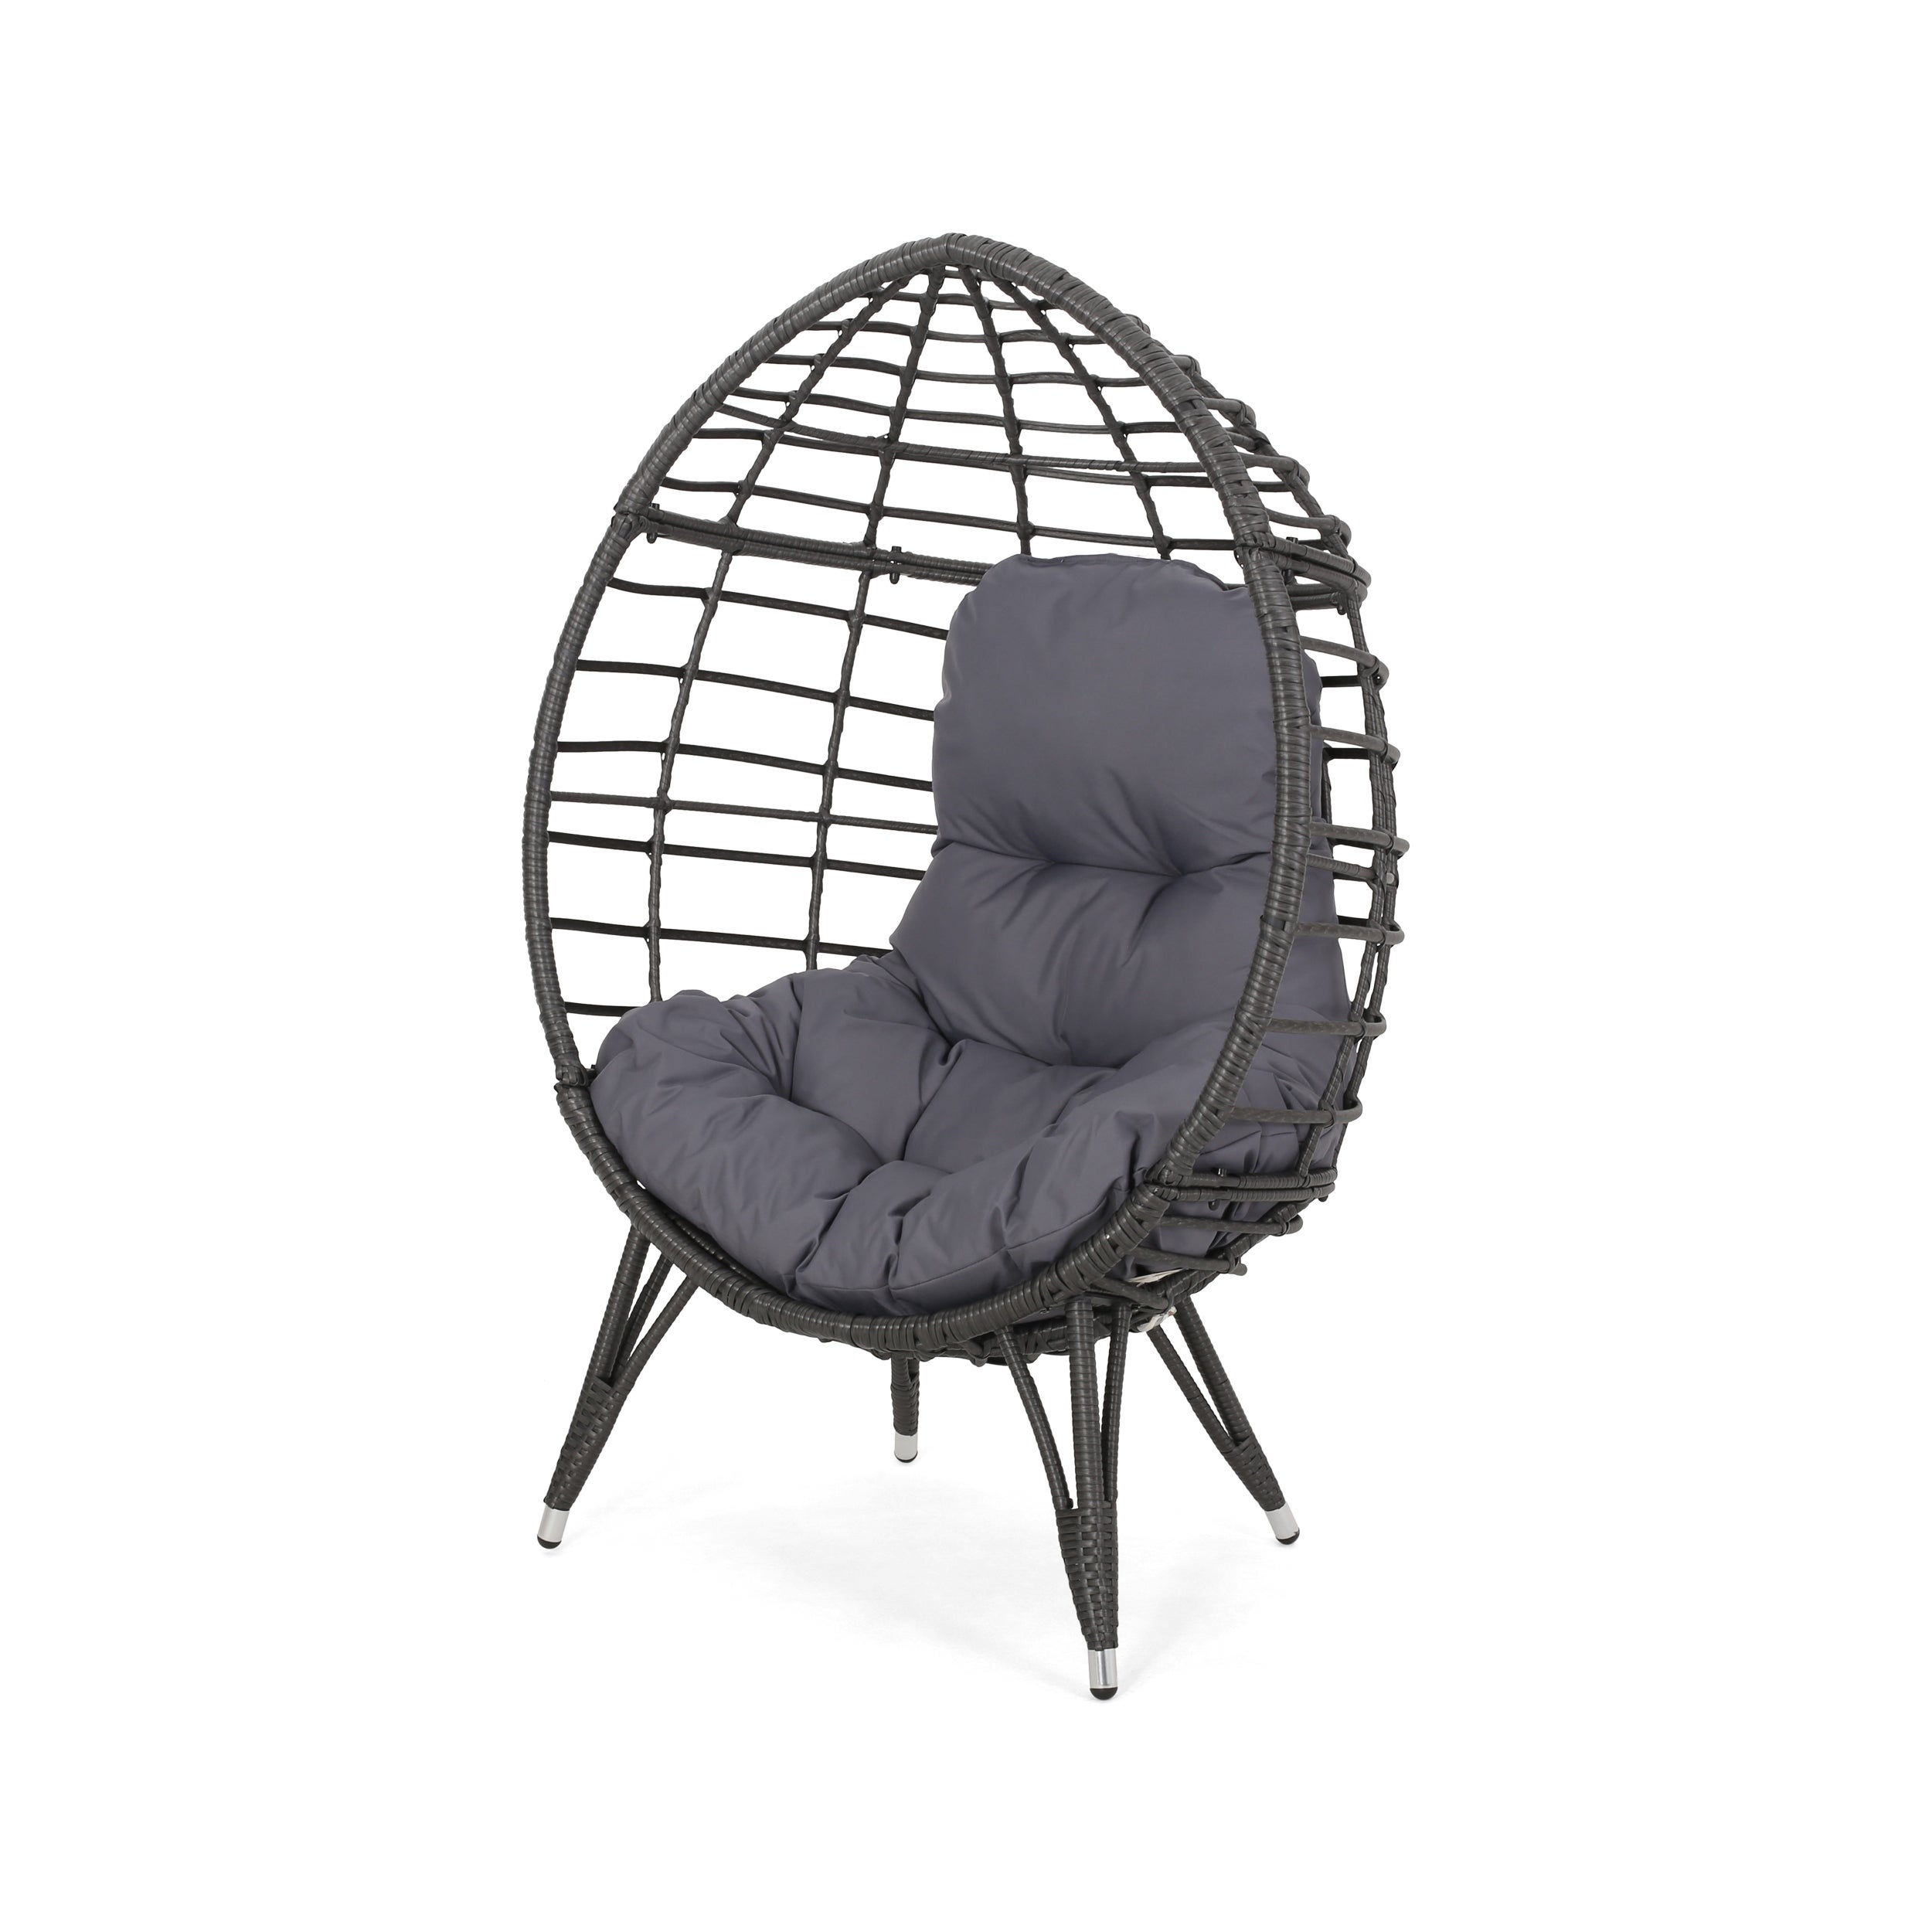 Brilliant Savin Indoor Wicker Teardrop Chair With Cushion By Christopher Knight Home Ocoug Best Dining Table And Chair Ideas Images Ocougorg